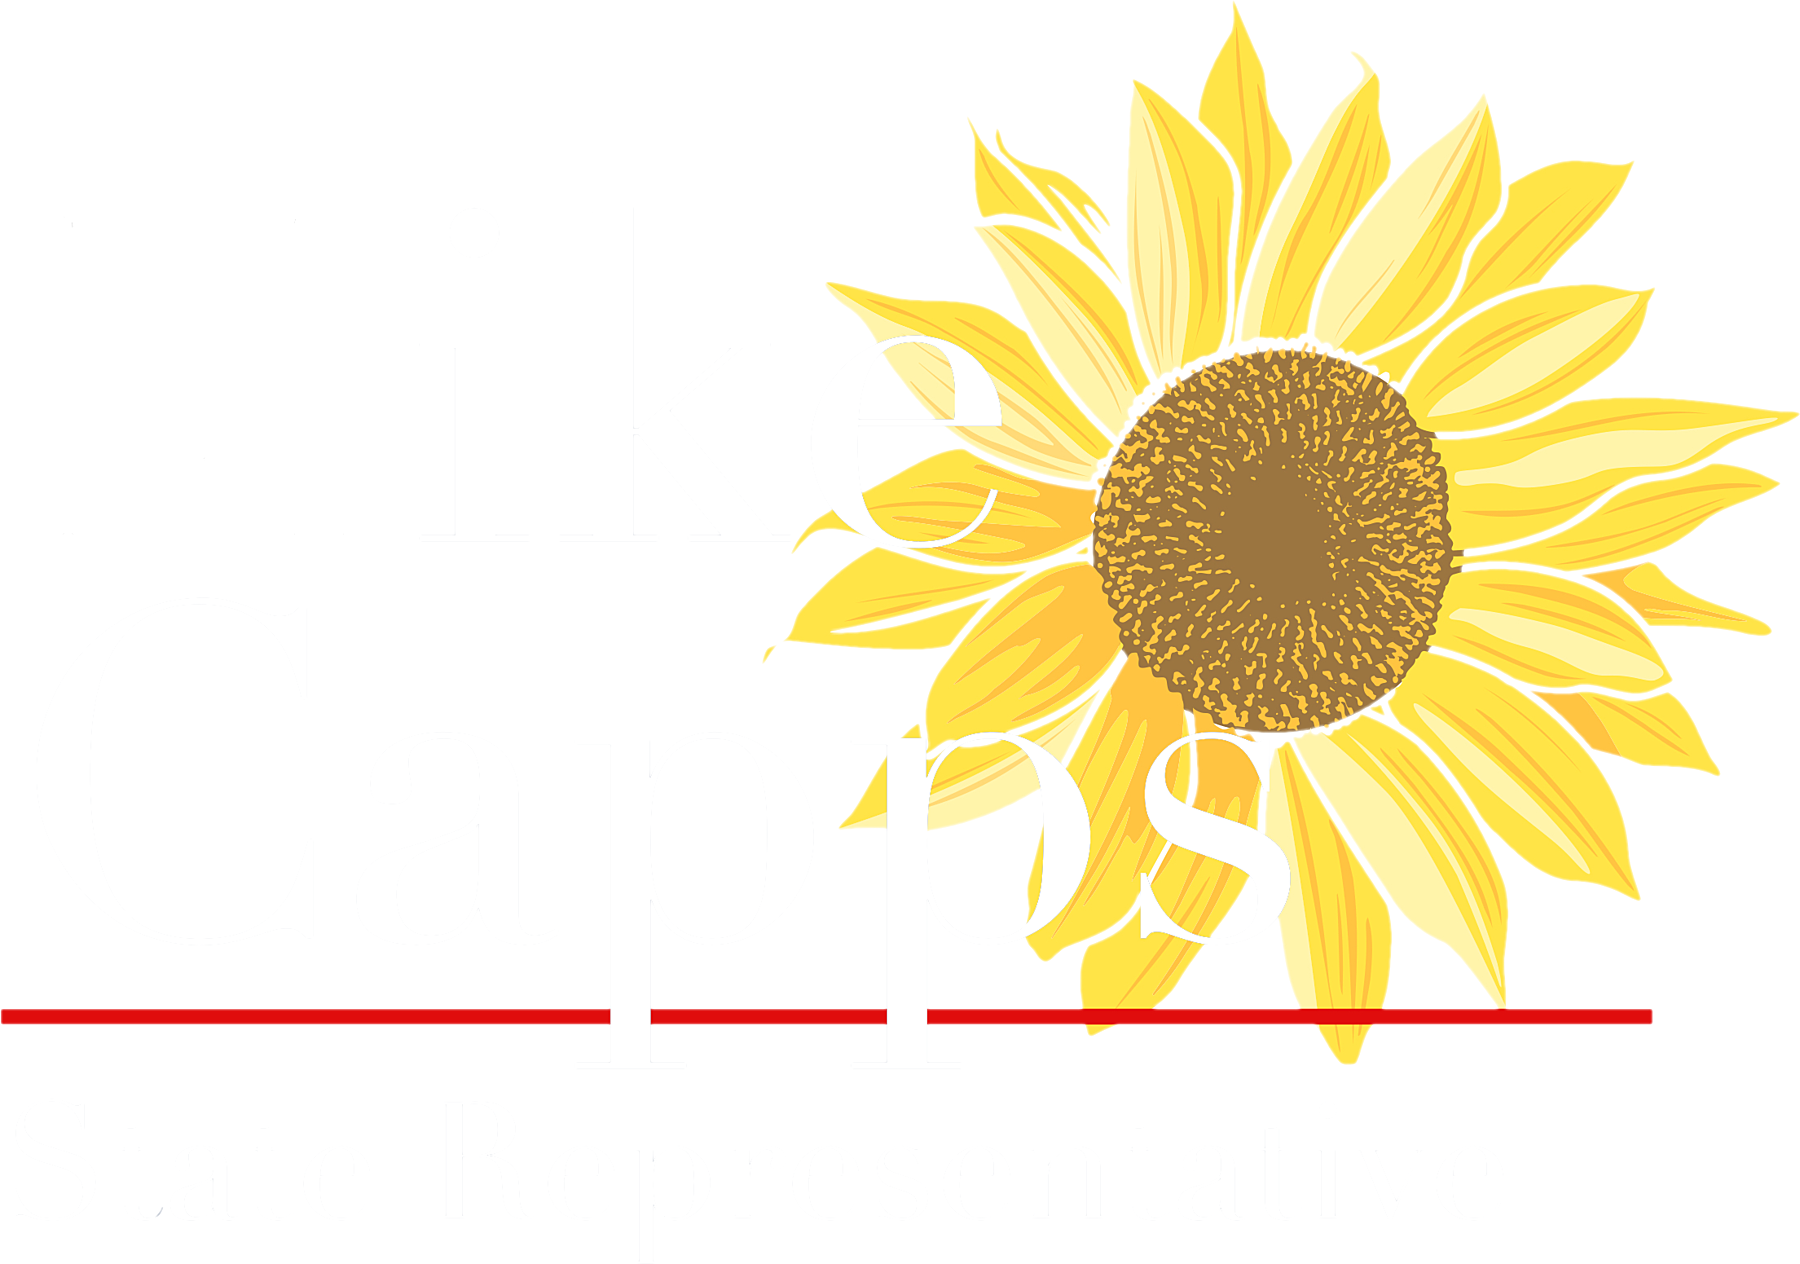 Mike Capps for Kansas: General Fund